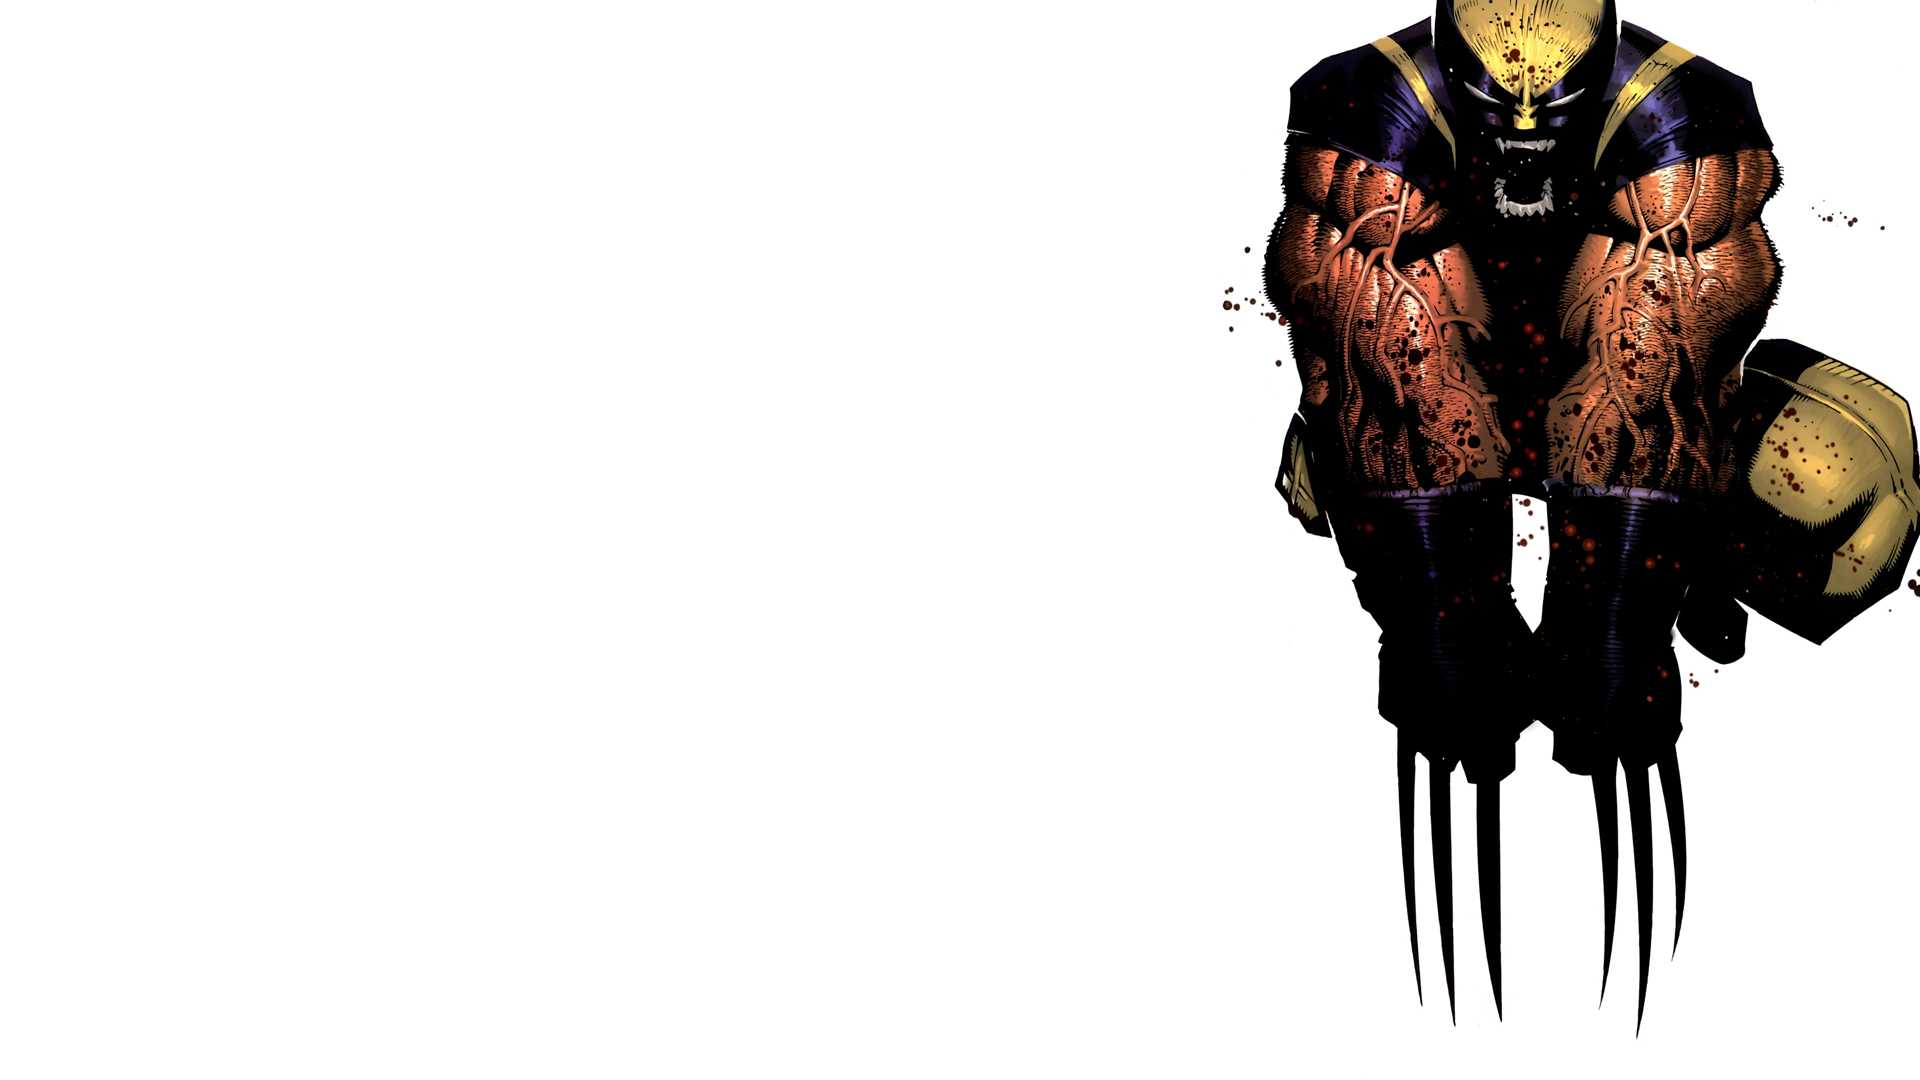 Wolverine Marvel Comics white background wallpaper 1920x1080 1920x1080